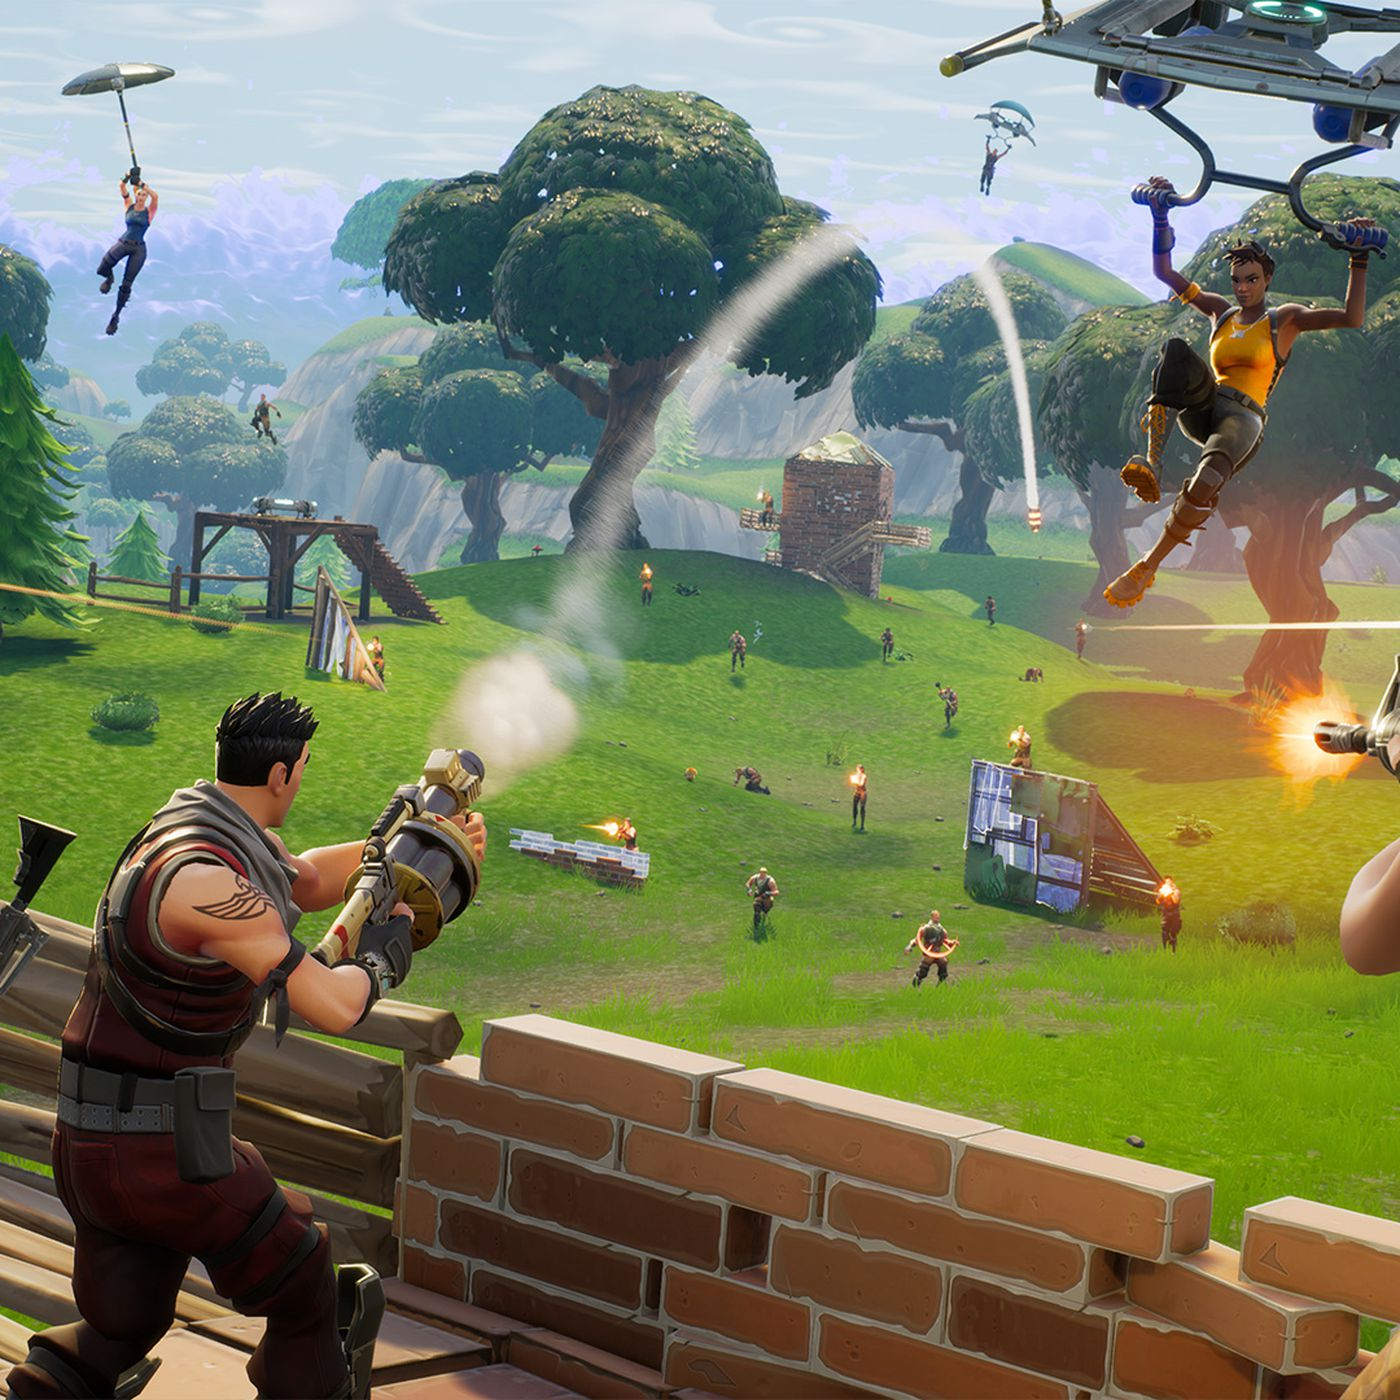 Fortnite Battle Royale is coming to mobile (update) - Polygon